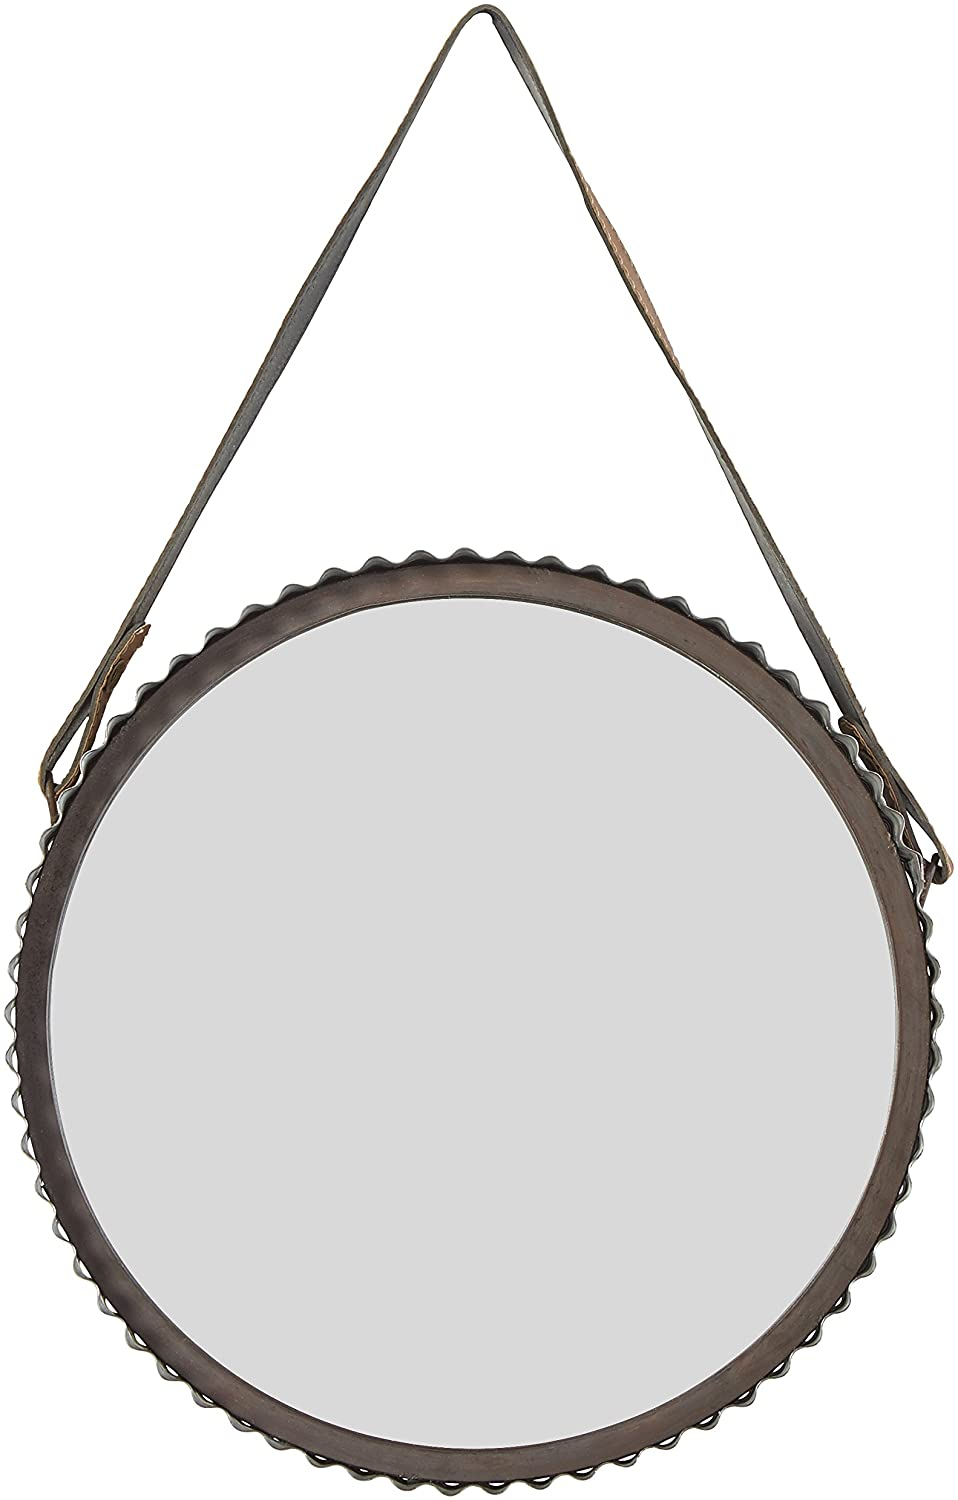 Amazon Brand – Stone & Beam Rustic Farmhouse Round Wood Iron Mirror with Faux Leather Strap - 22 Inch, Black Metal